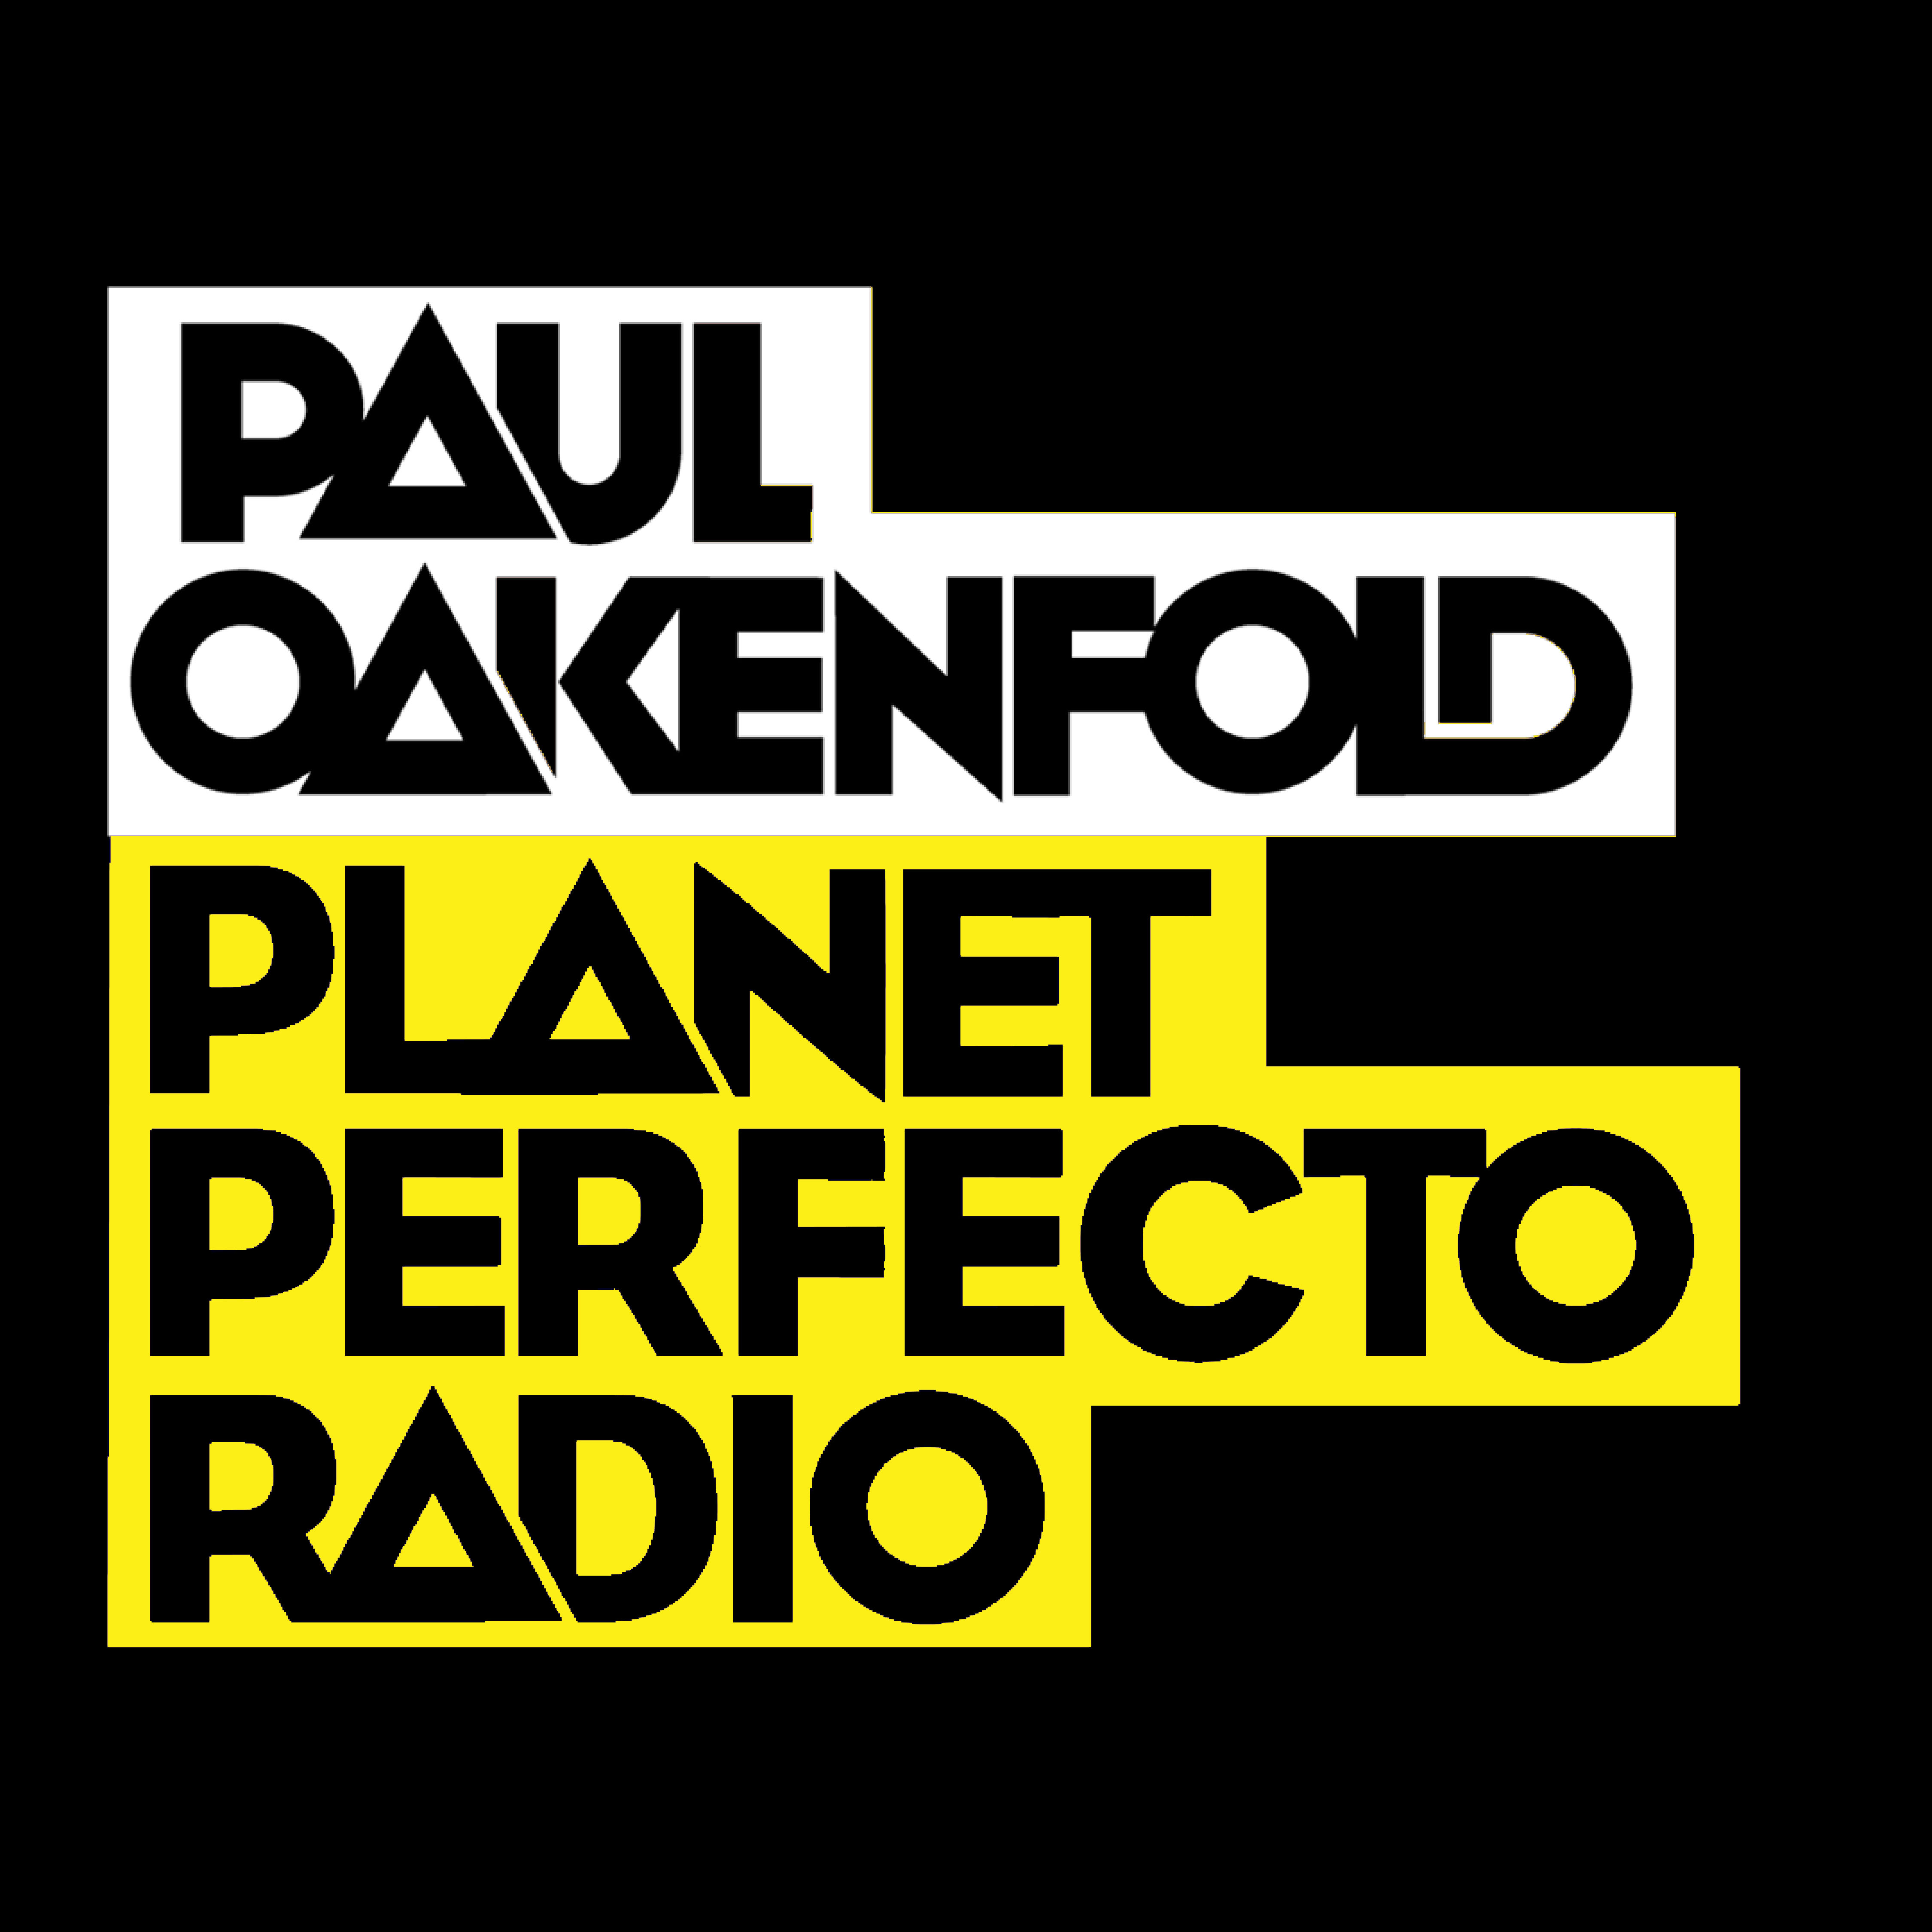 Planet Perfecto Podcast 556 ft. Paul Oakenfold